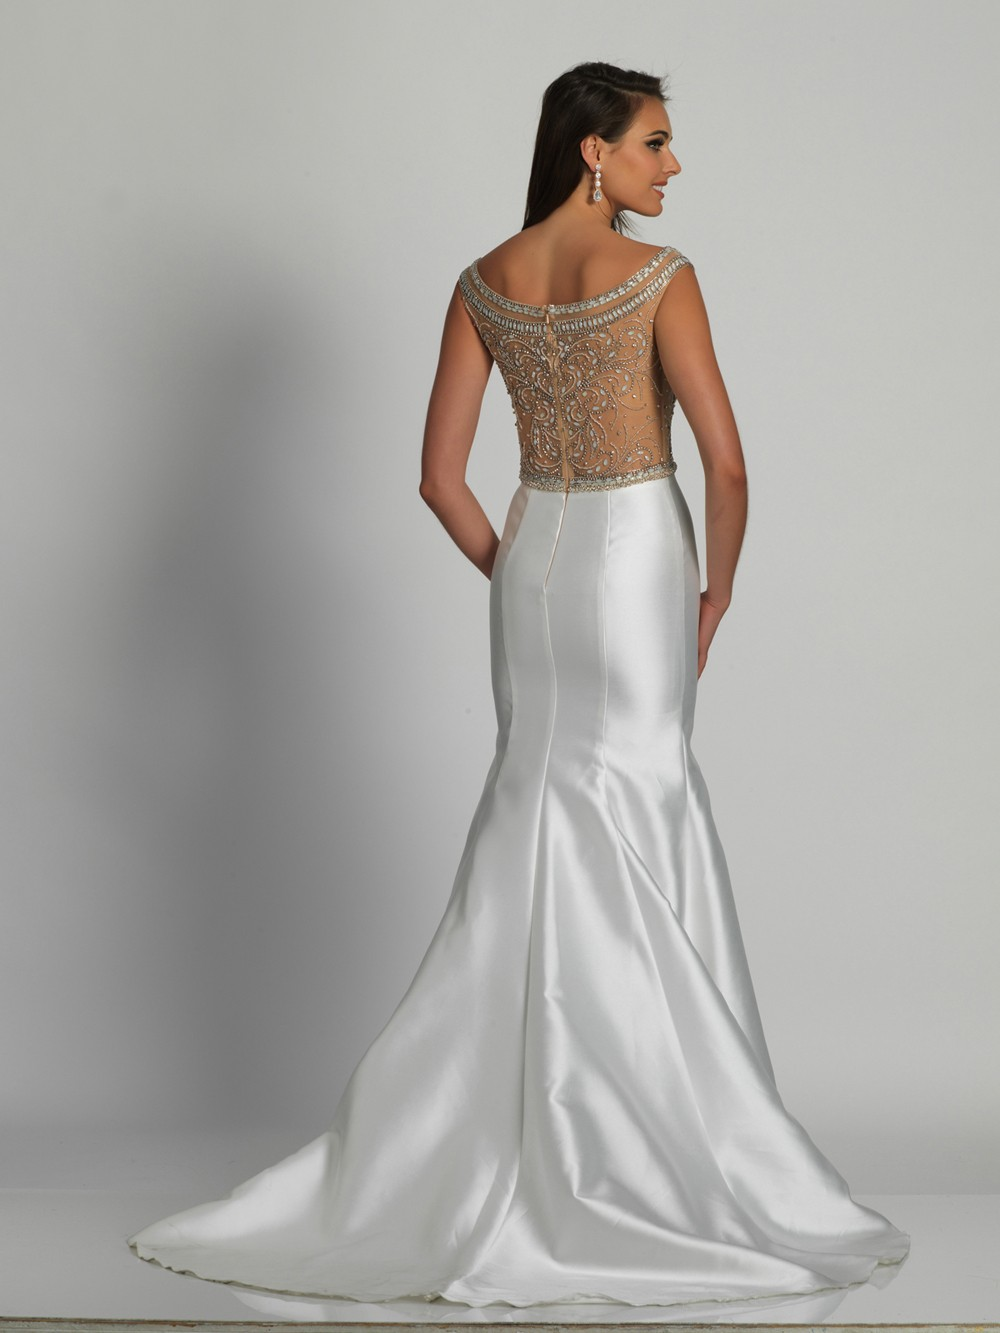 2f21909f25d Dave and Johnny 6277 Dress - MadameBridal.com